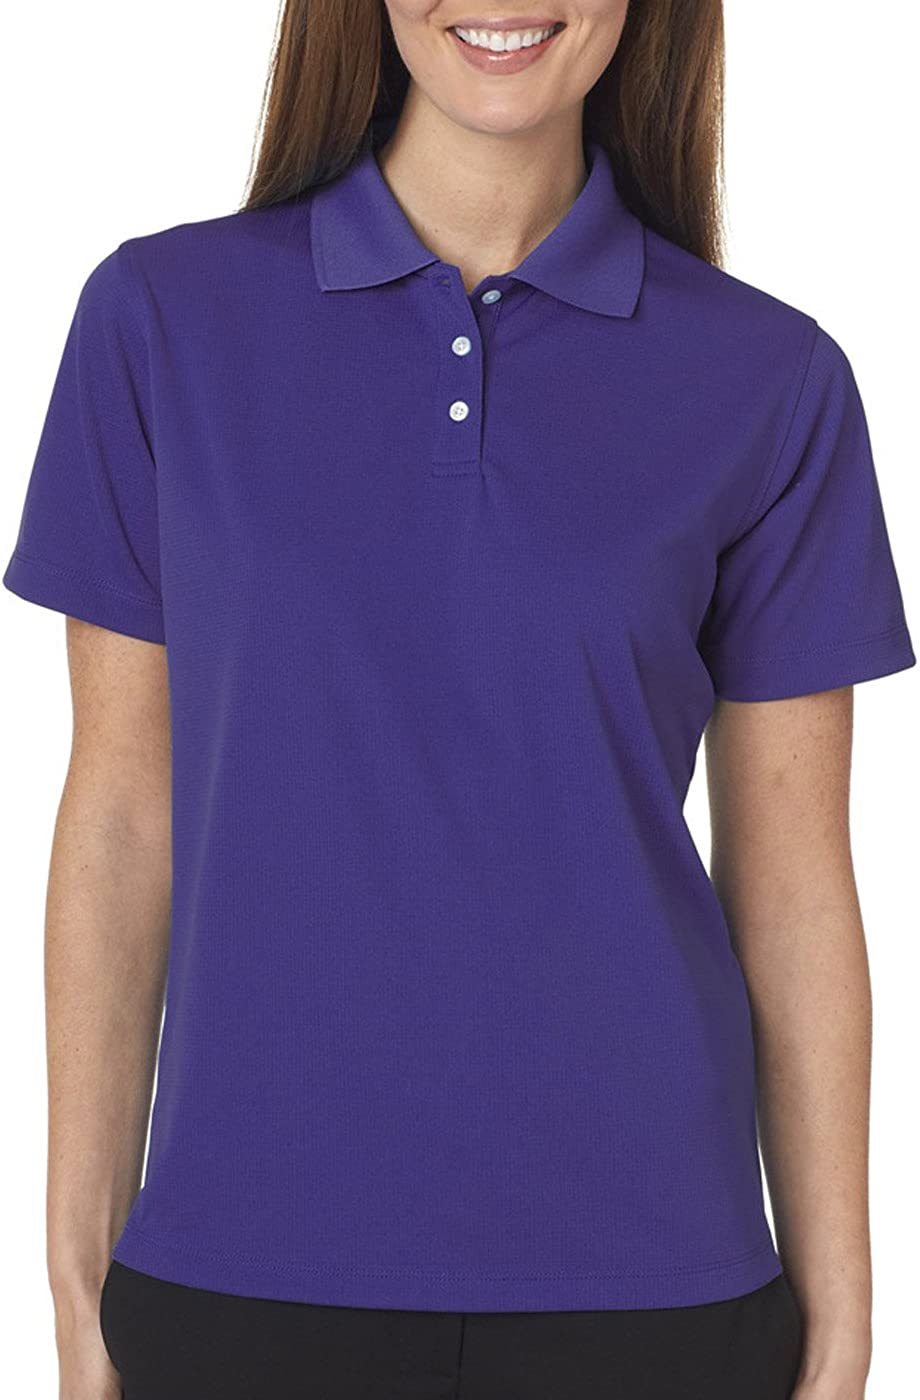 UltraClubs Women's Cool & Dry Stain-Release Performance Polo Tee, Purple, Small